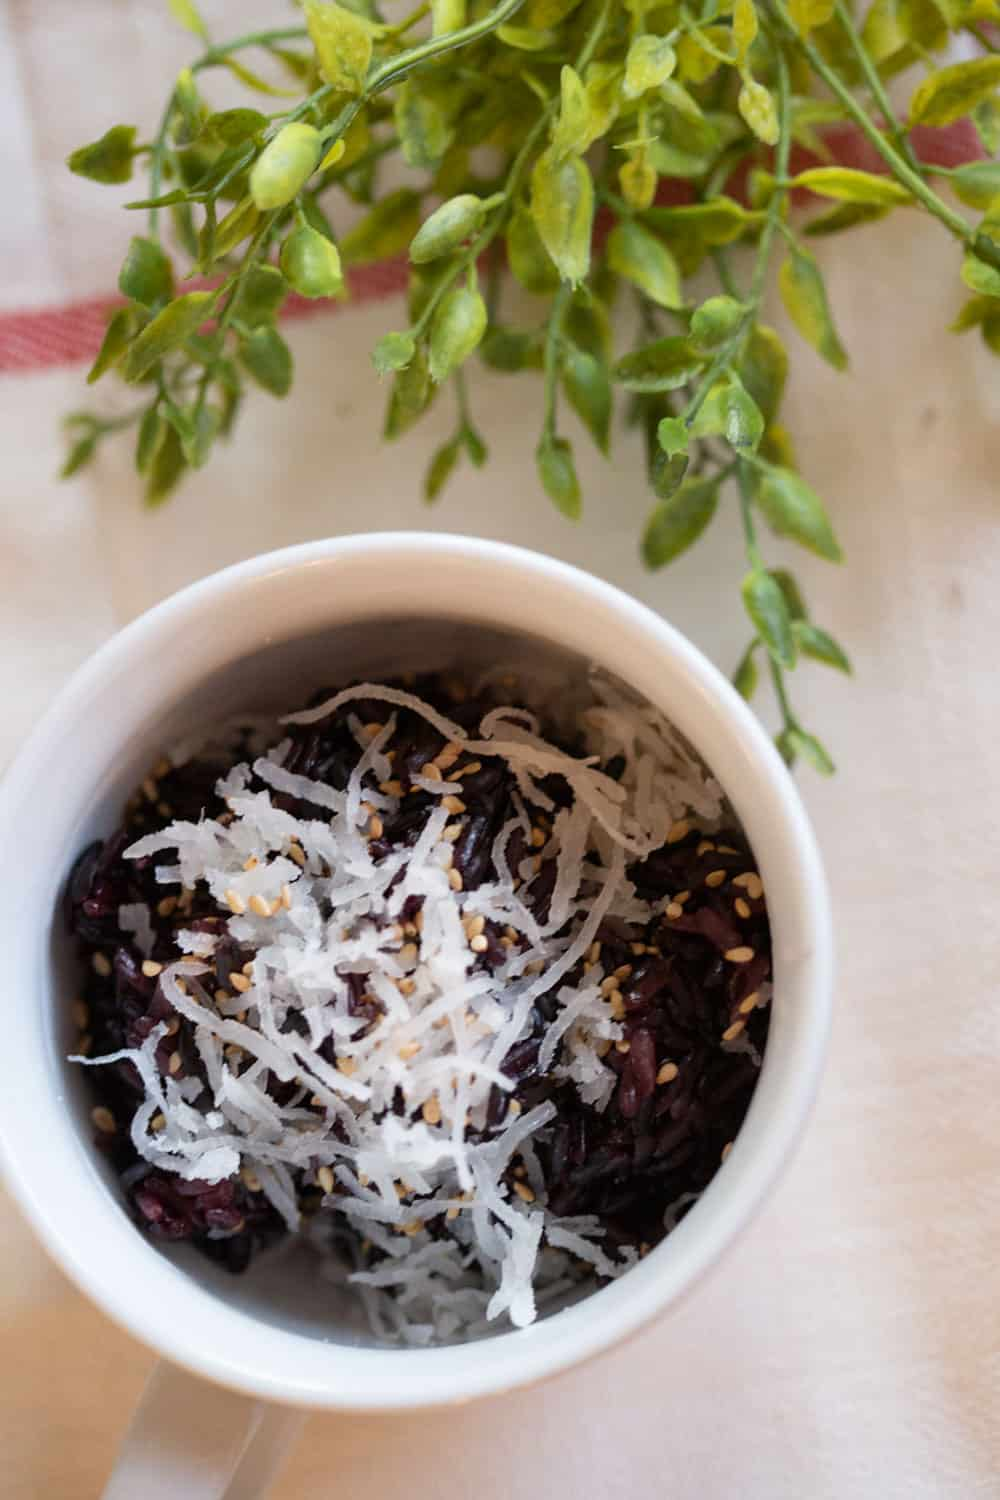 Thai black sticky rice